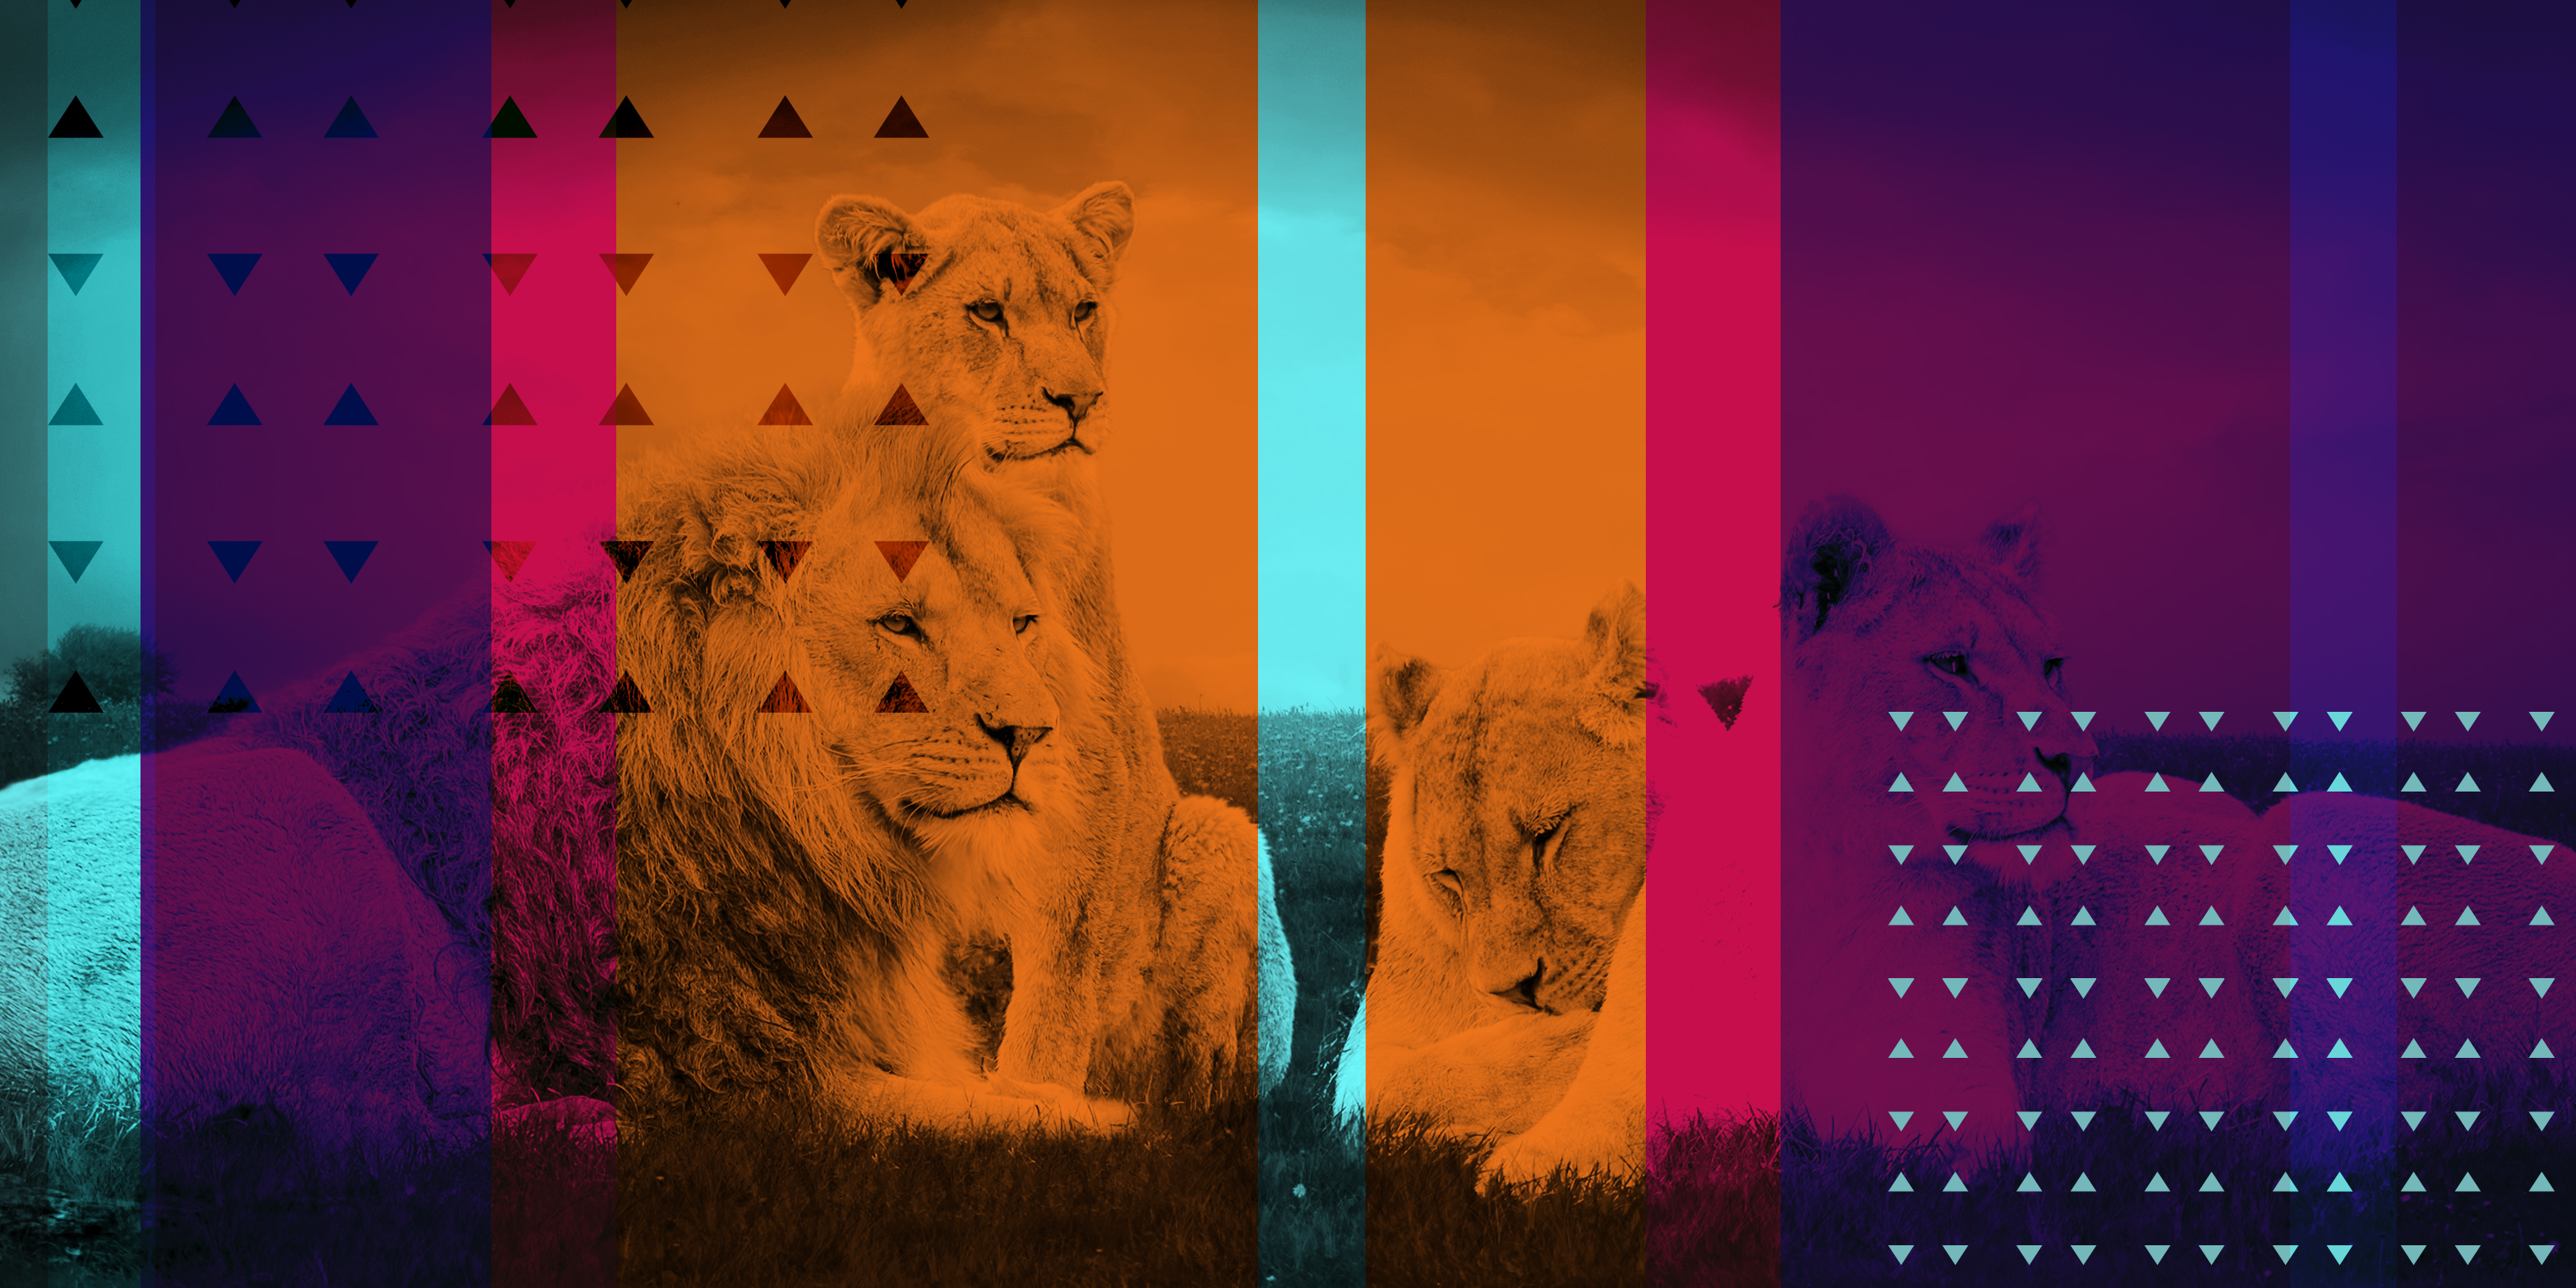 Image of three lions with a multicolored overlay